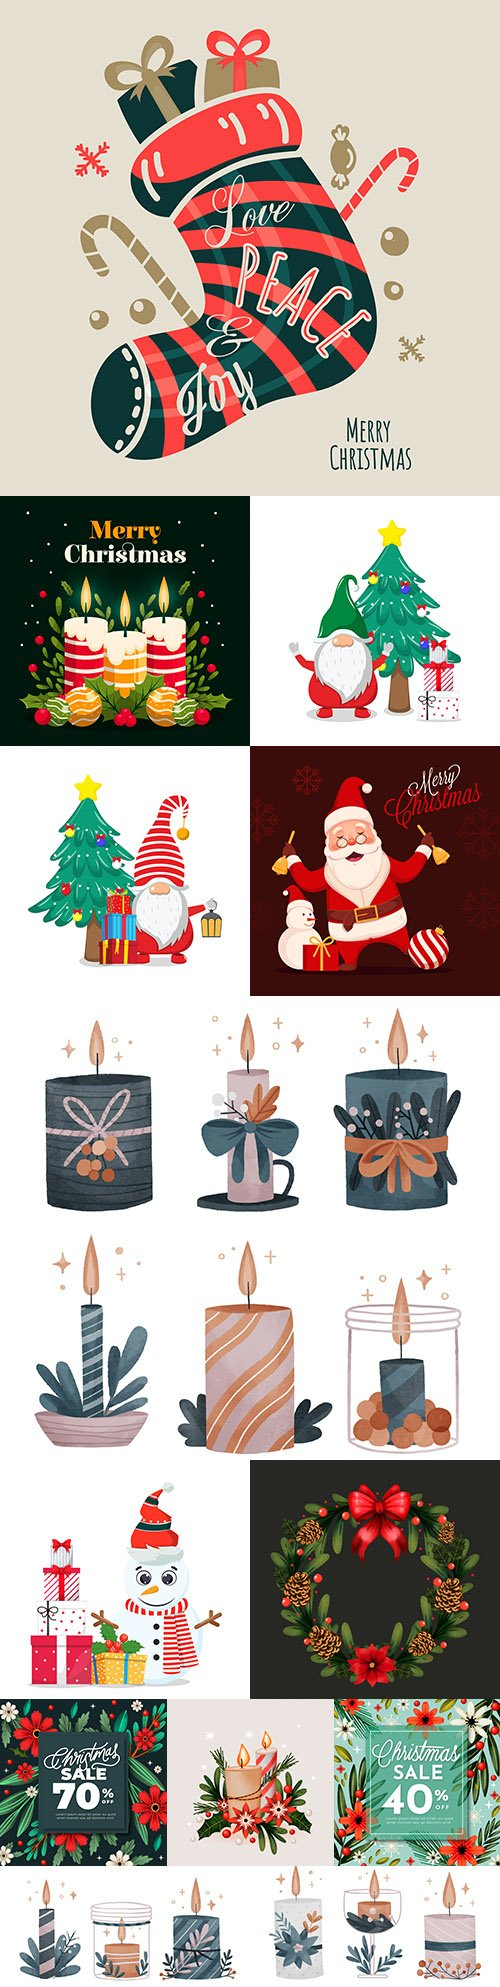 Christmas and New Year background flat illustration design